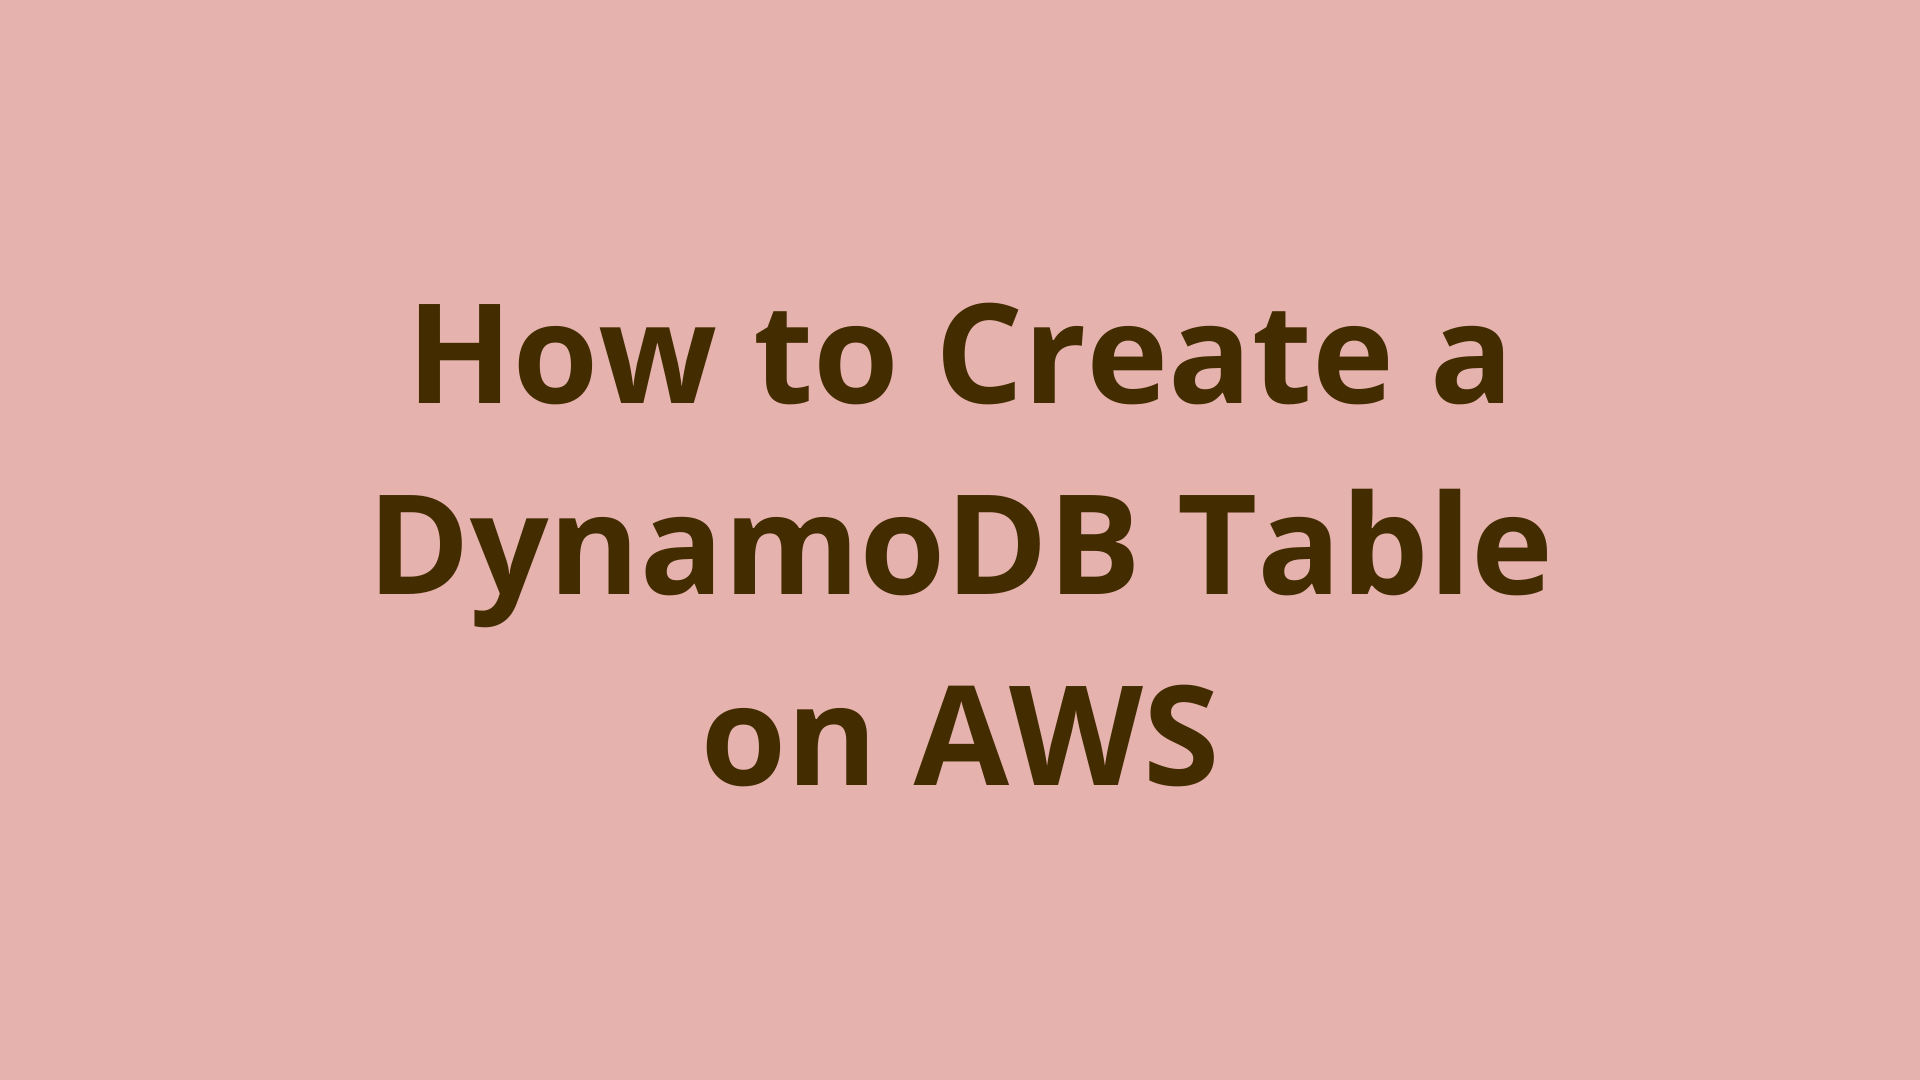 Image of How to create a DynamoDB table on AWS